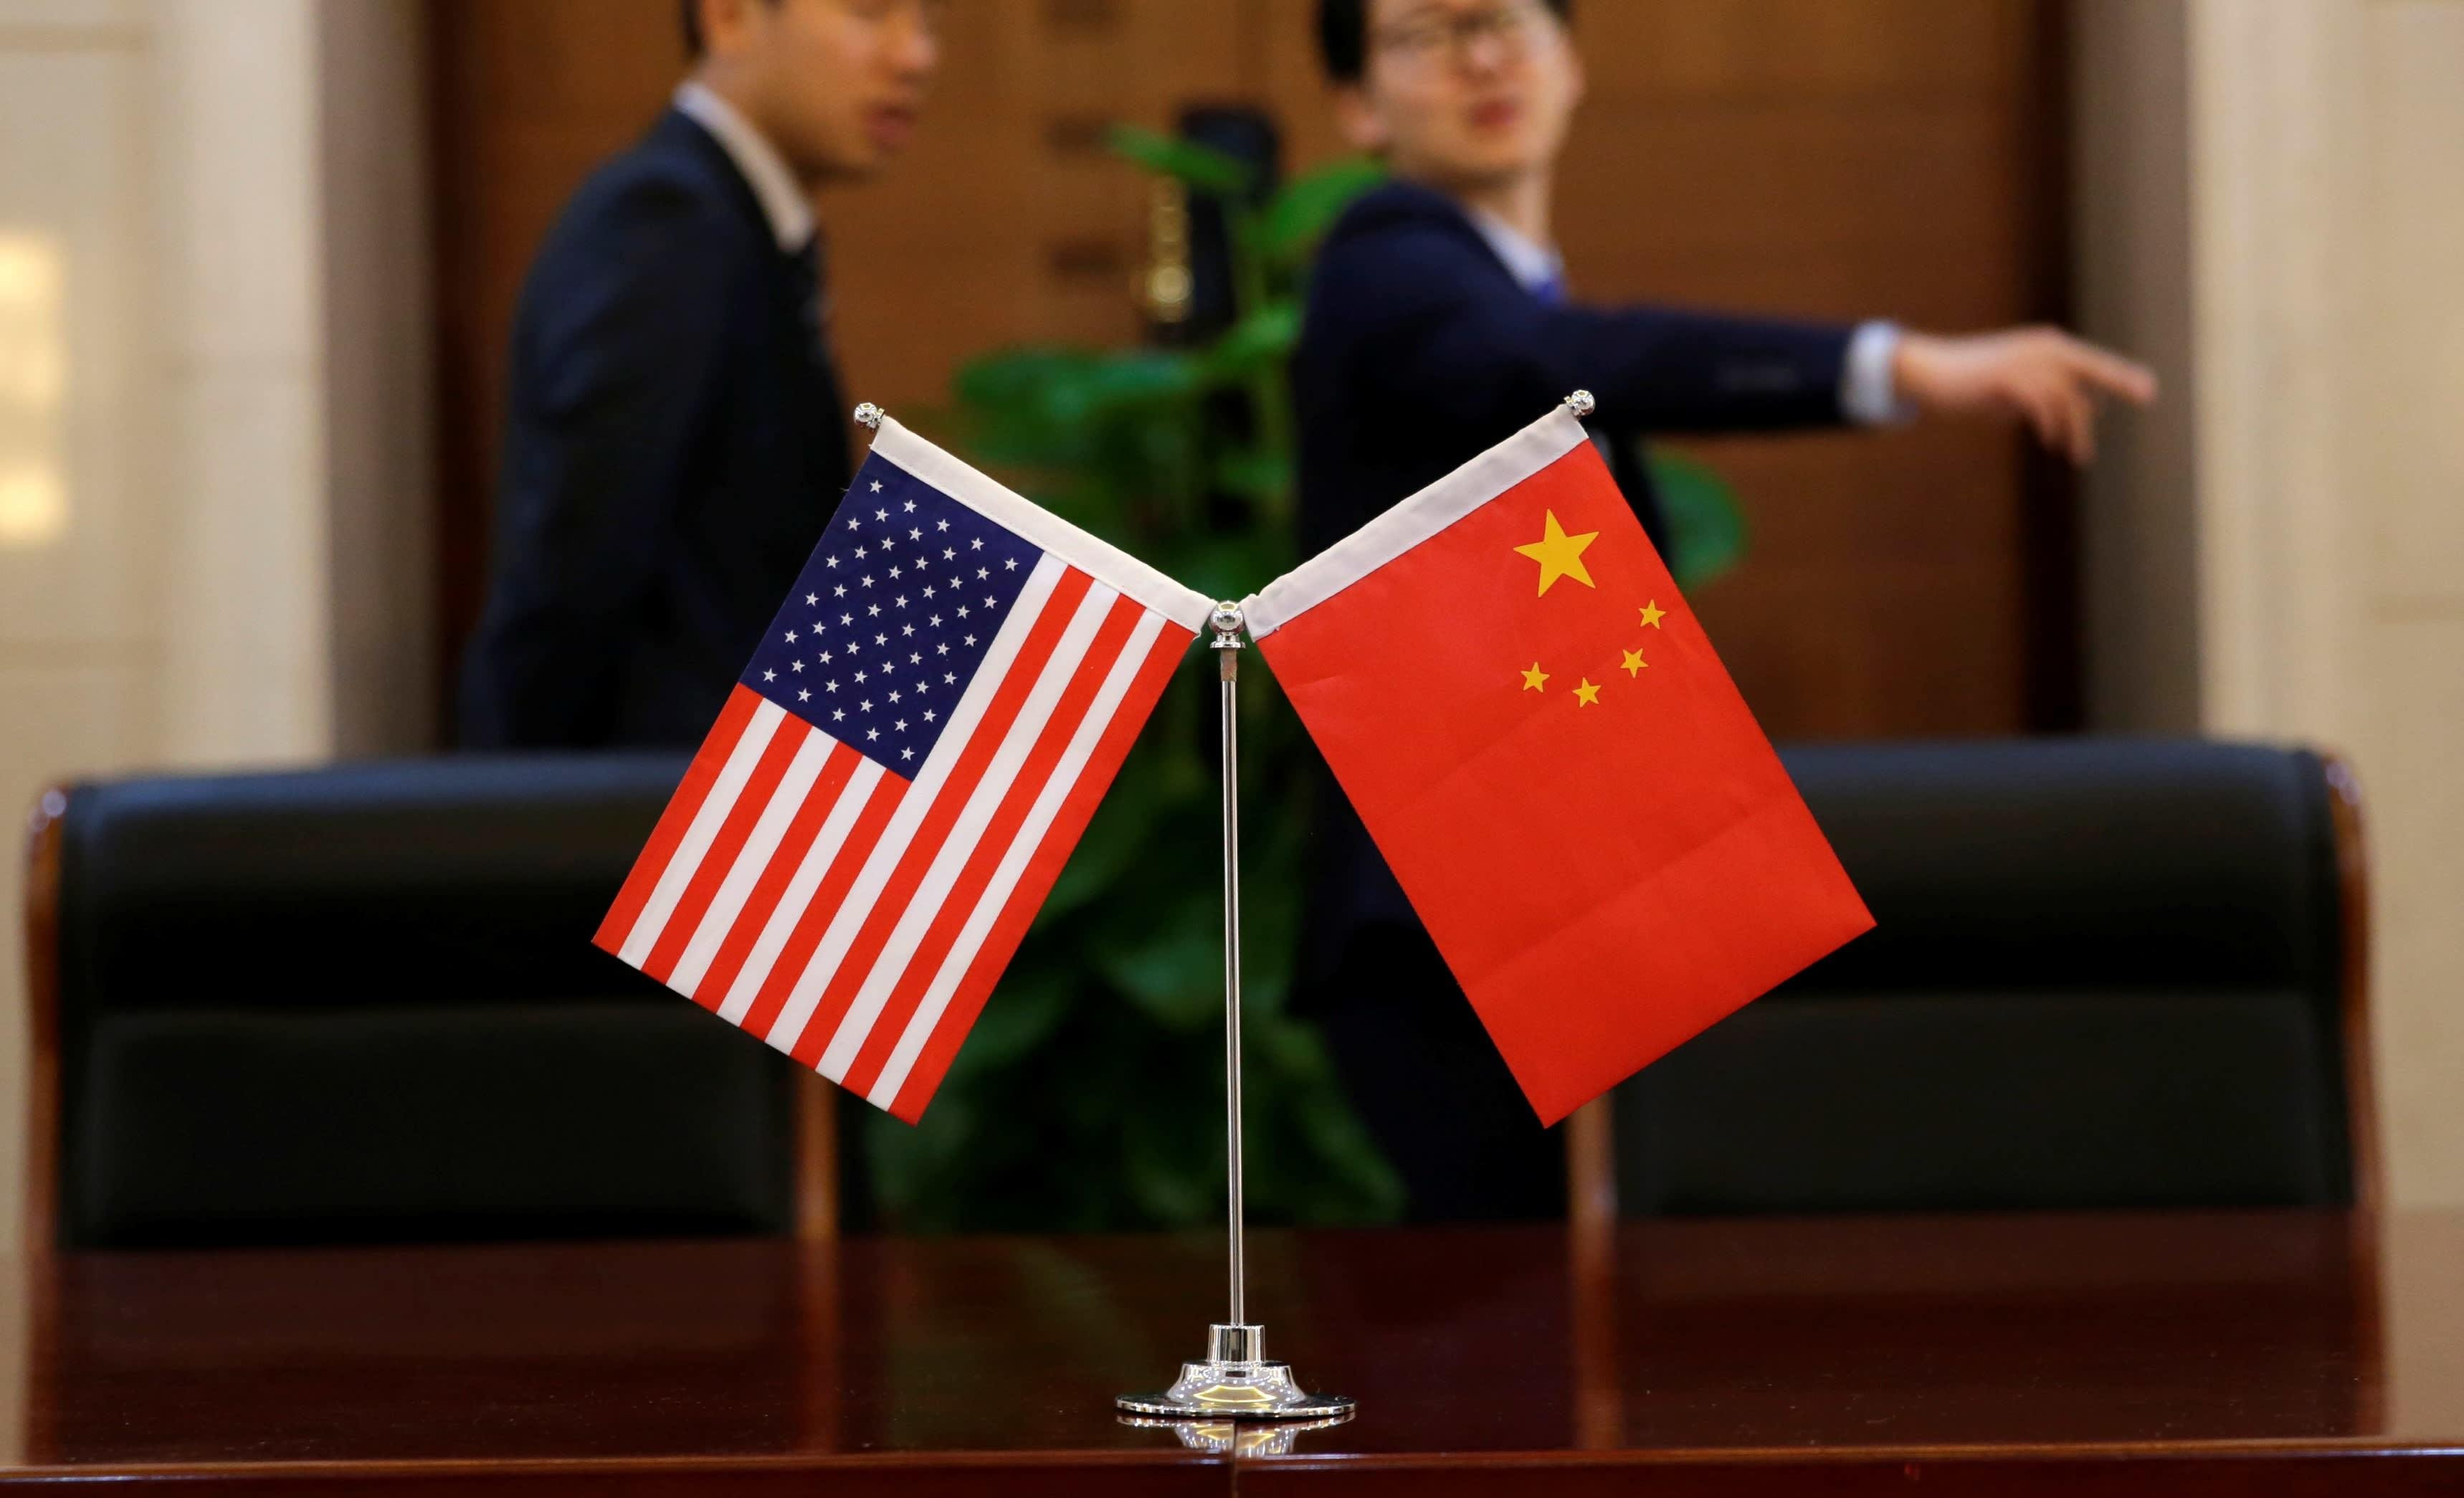 USA trade negotiators need to show 'sincerity' in Shanghai talks